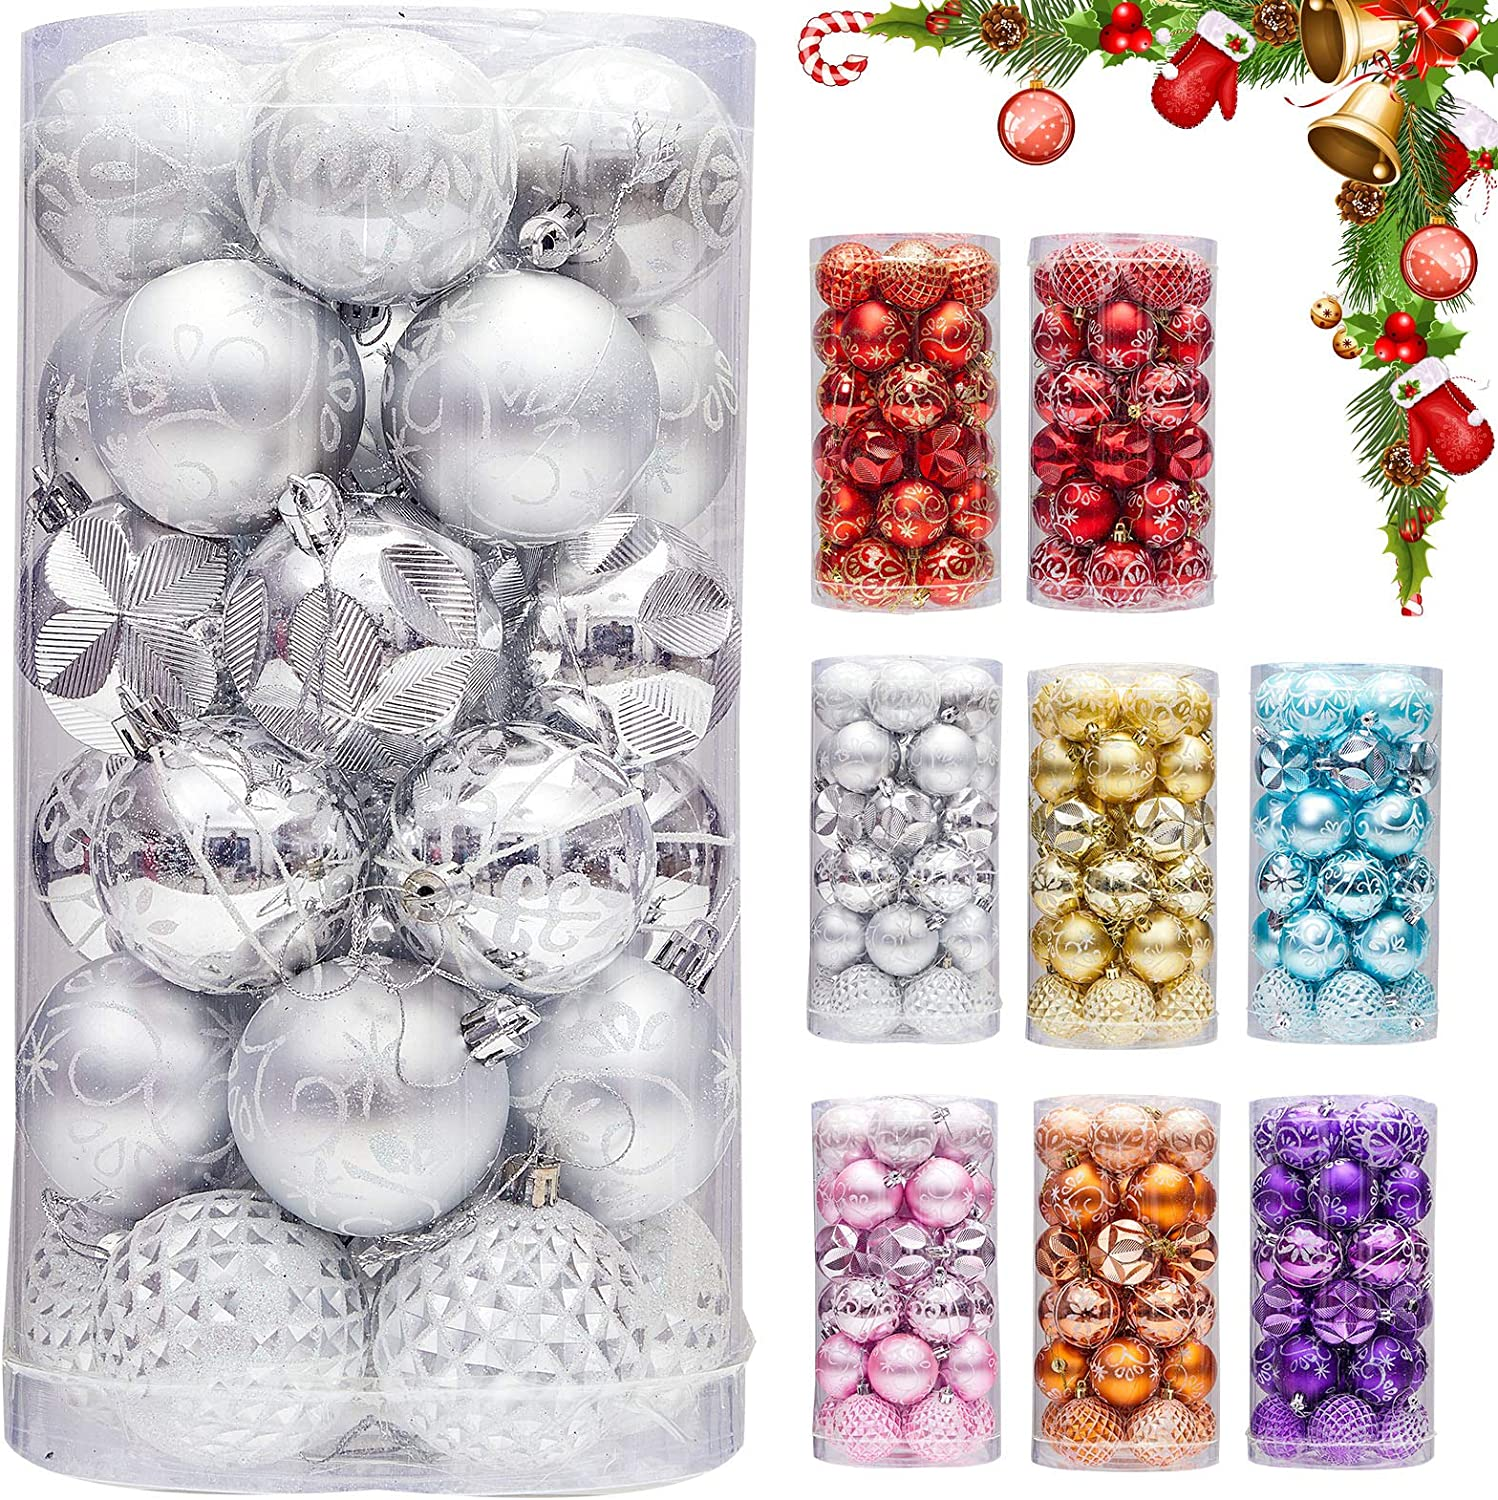 "30ct 2.36"" Christmas Ball Ornaments, Christmas Tree Decoration, Plastic Shatterproof Hanging Ball, Fits for Party, Holiday and Home Decor, Silver"